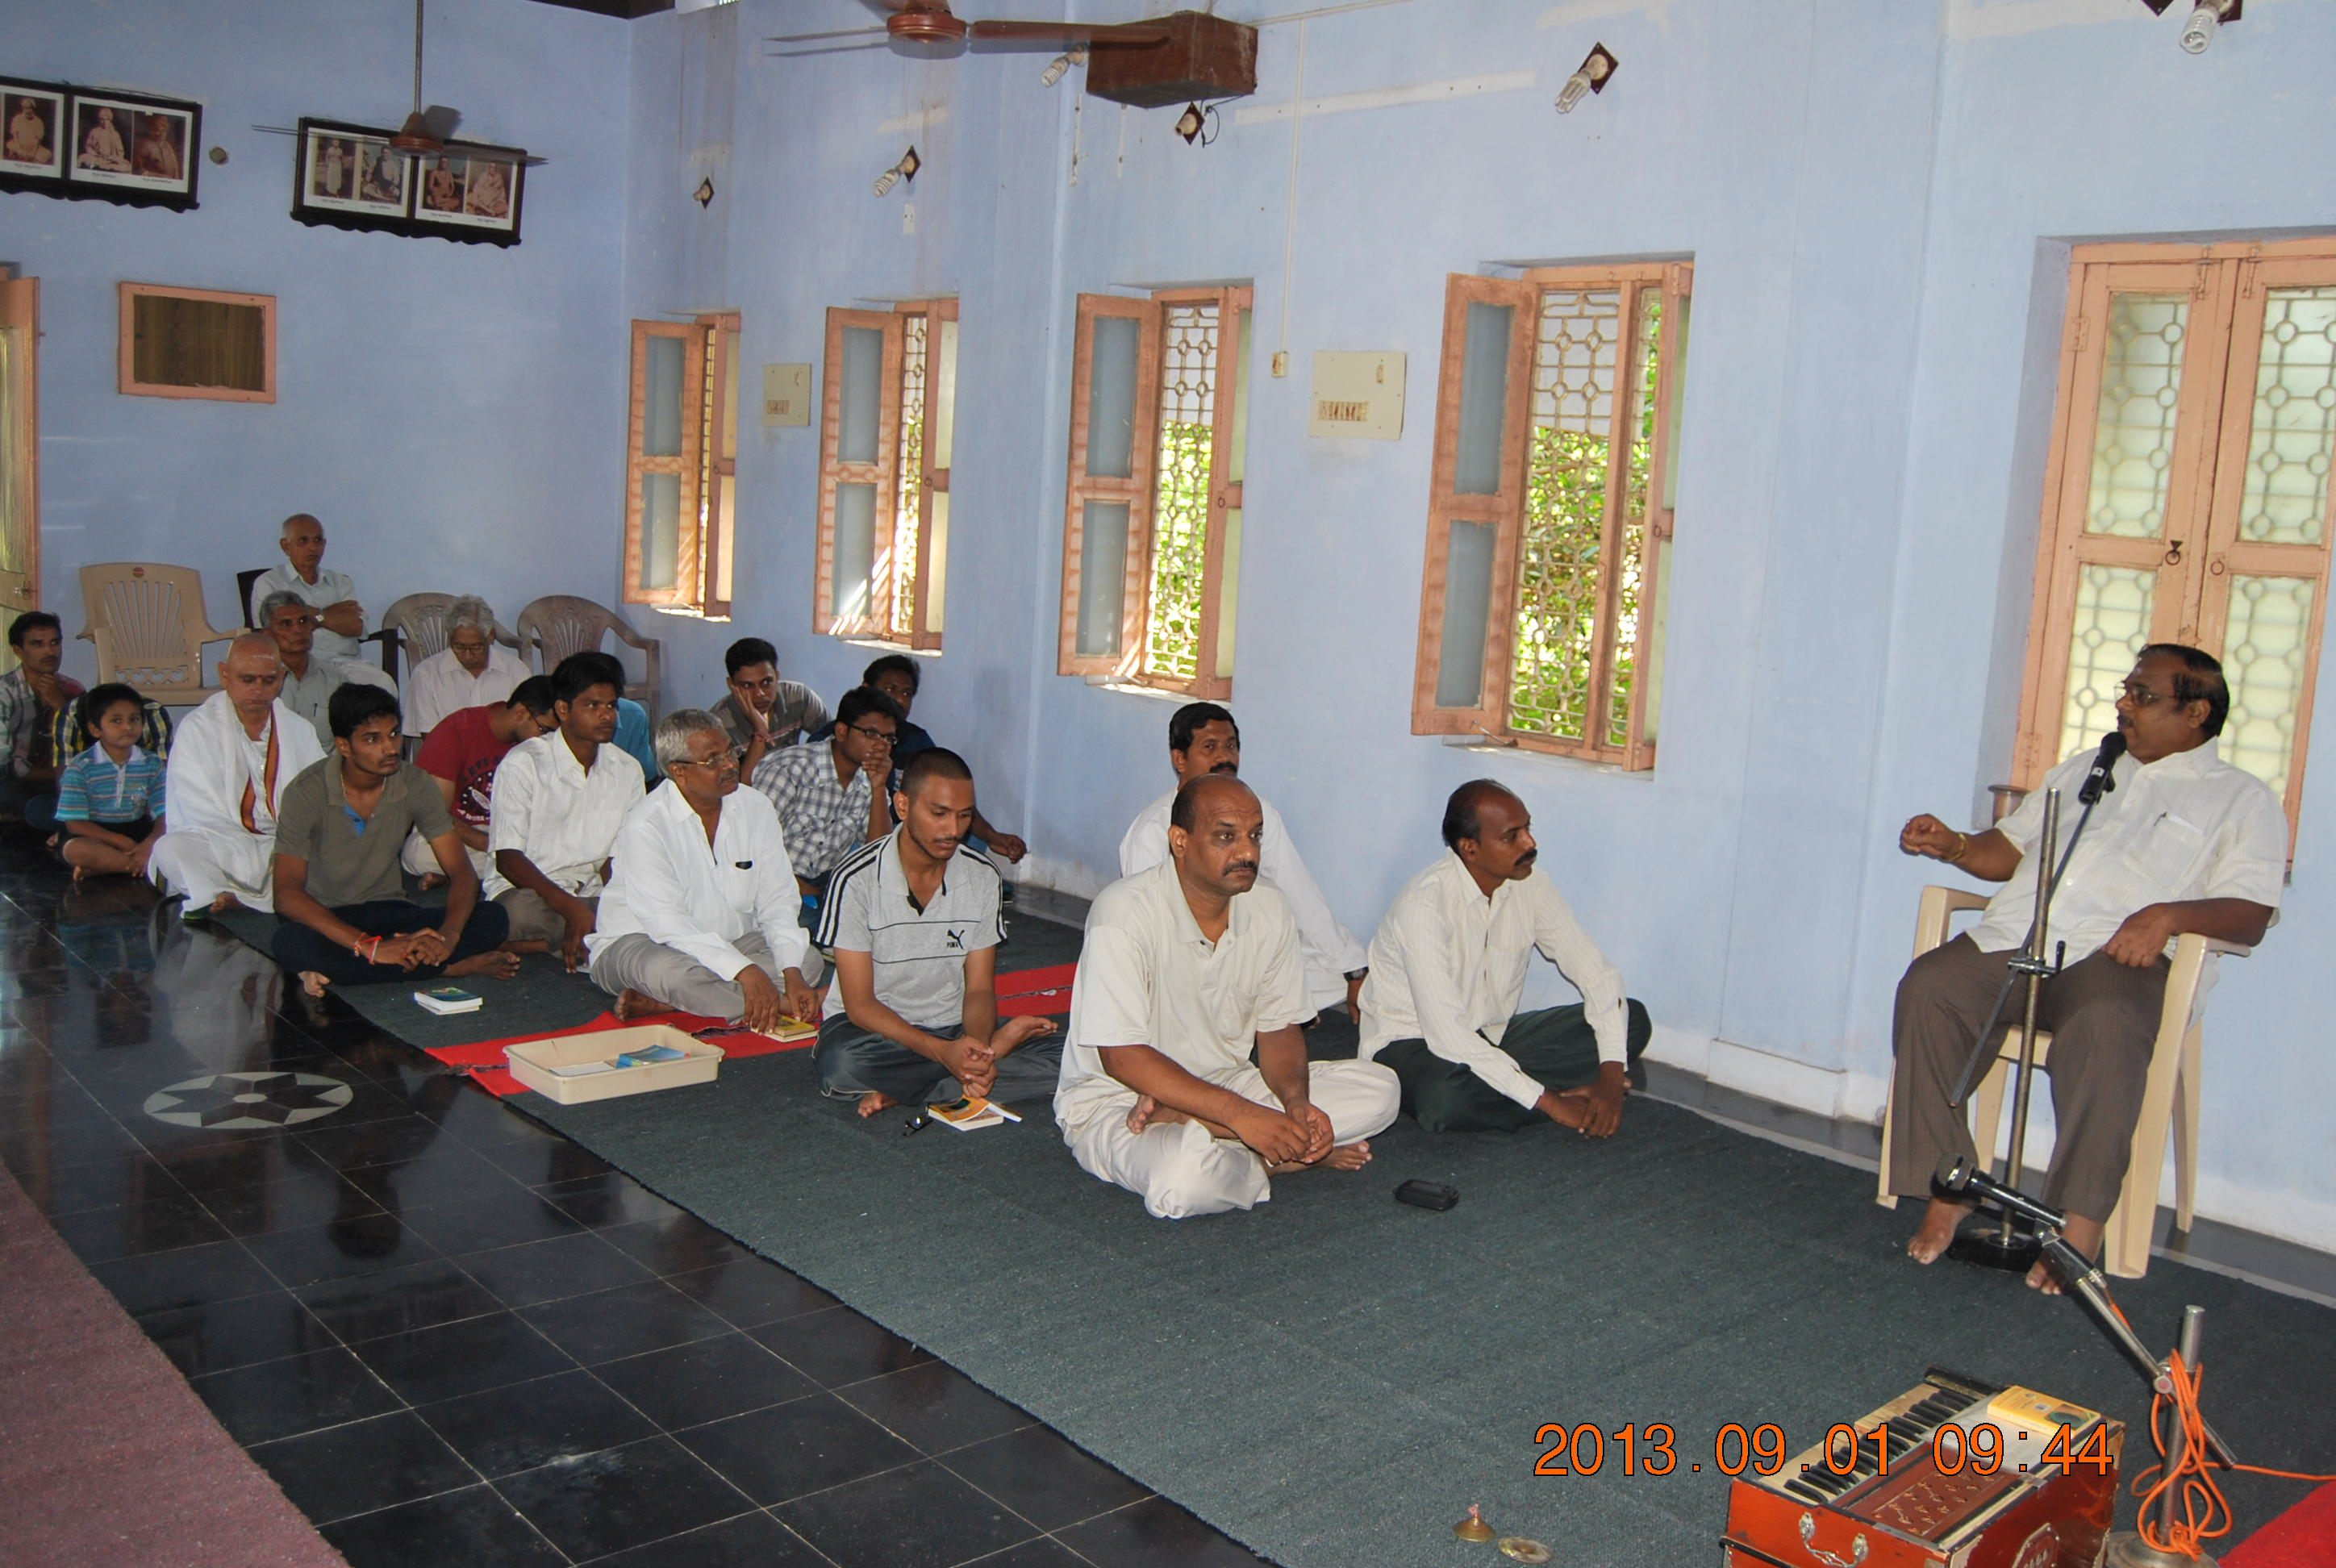 Gathering of devotees in the retreat.